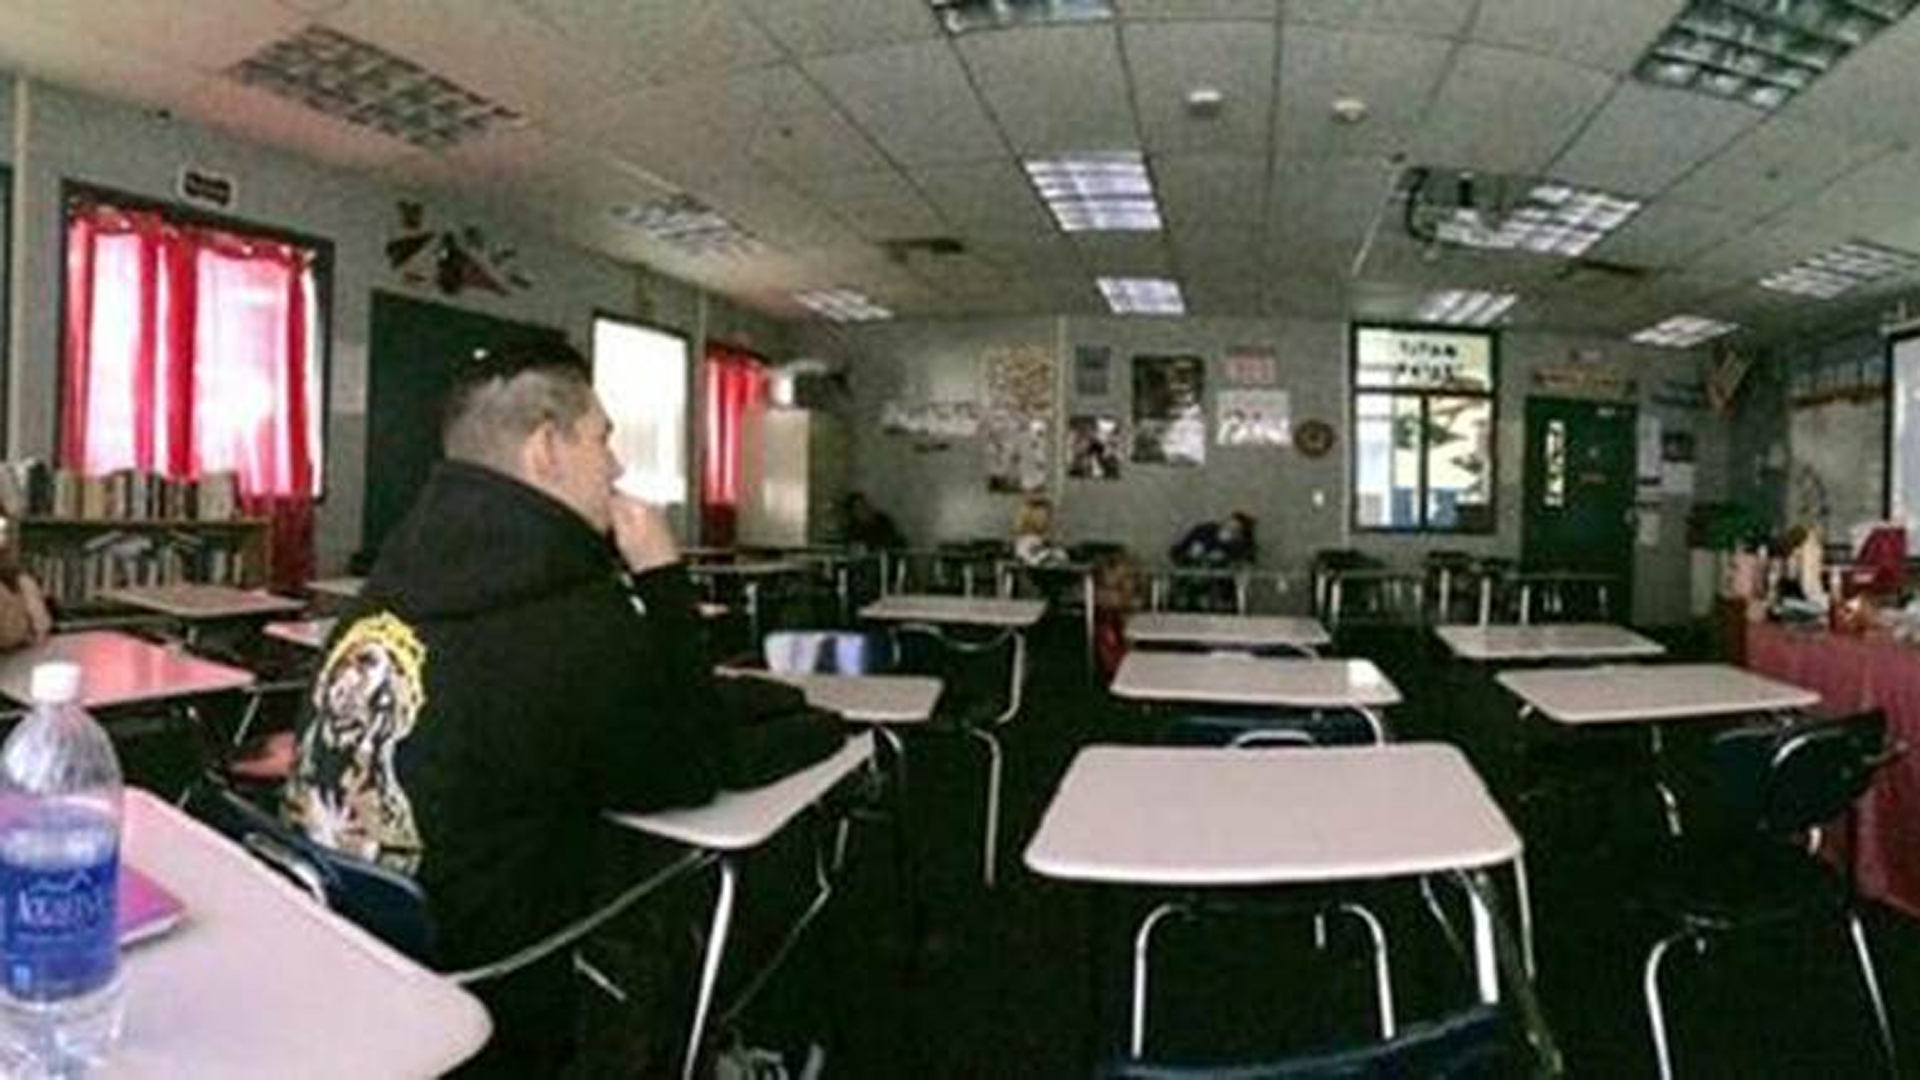 Some classrooms were nearly empty on Monday following a possible shooting threat at Temescal Canyon High School. (Credit: baileyyymaeee via Twitter)